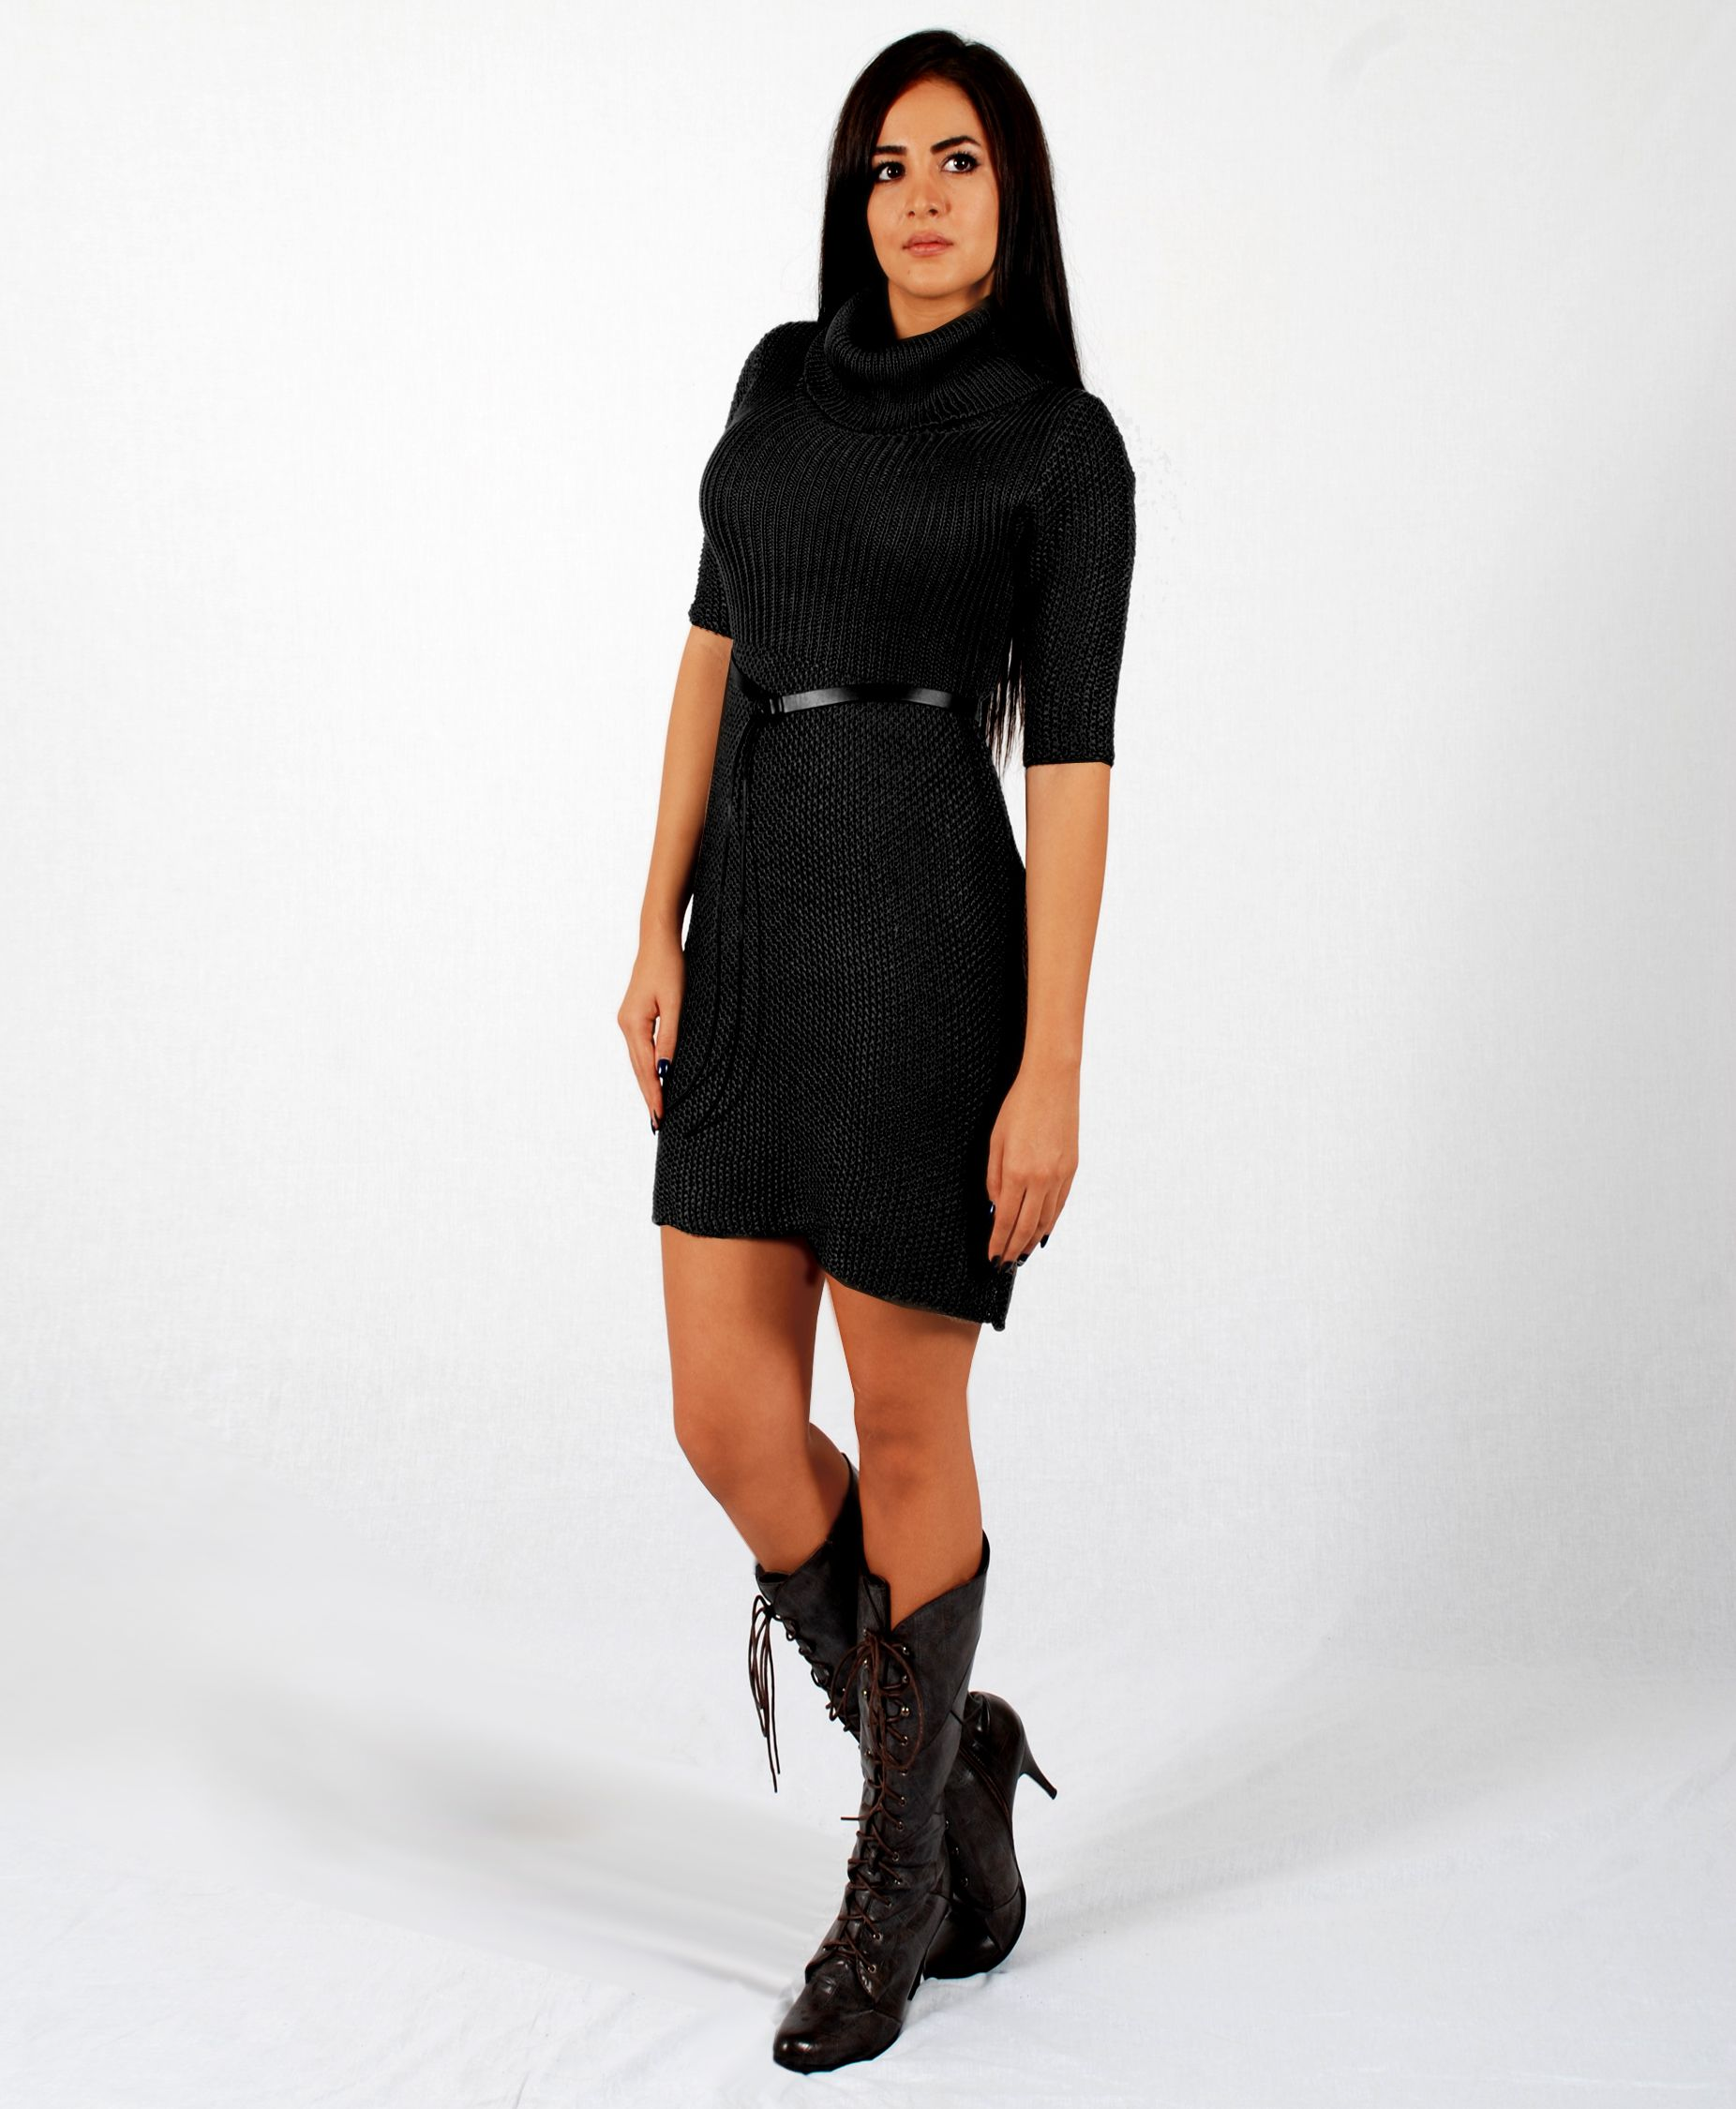 Distinguish yourself from the crowd with this trendy black